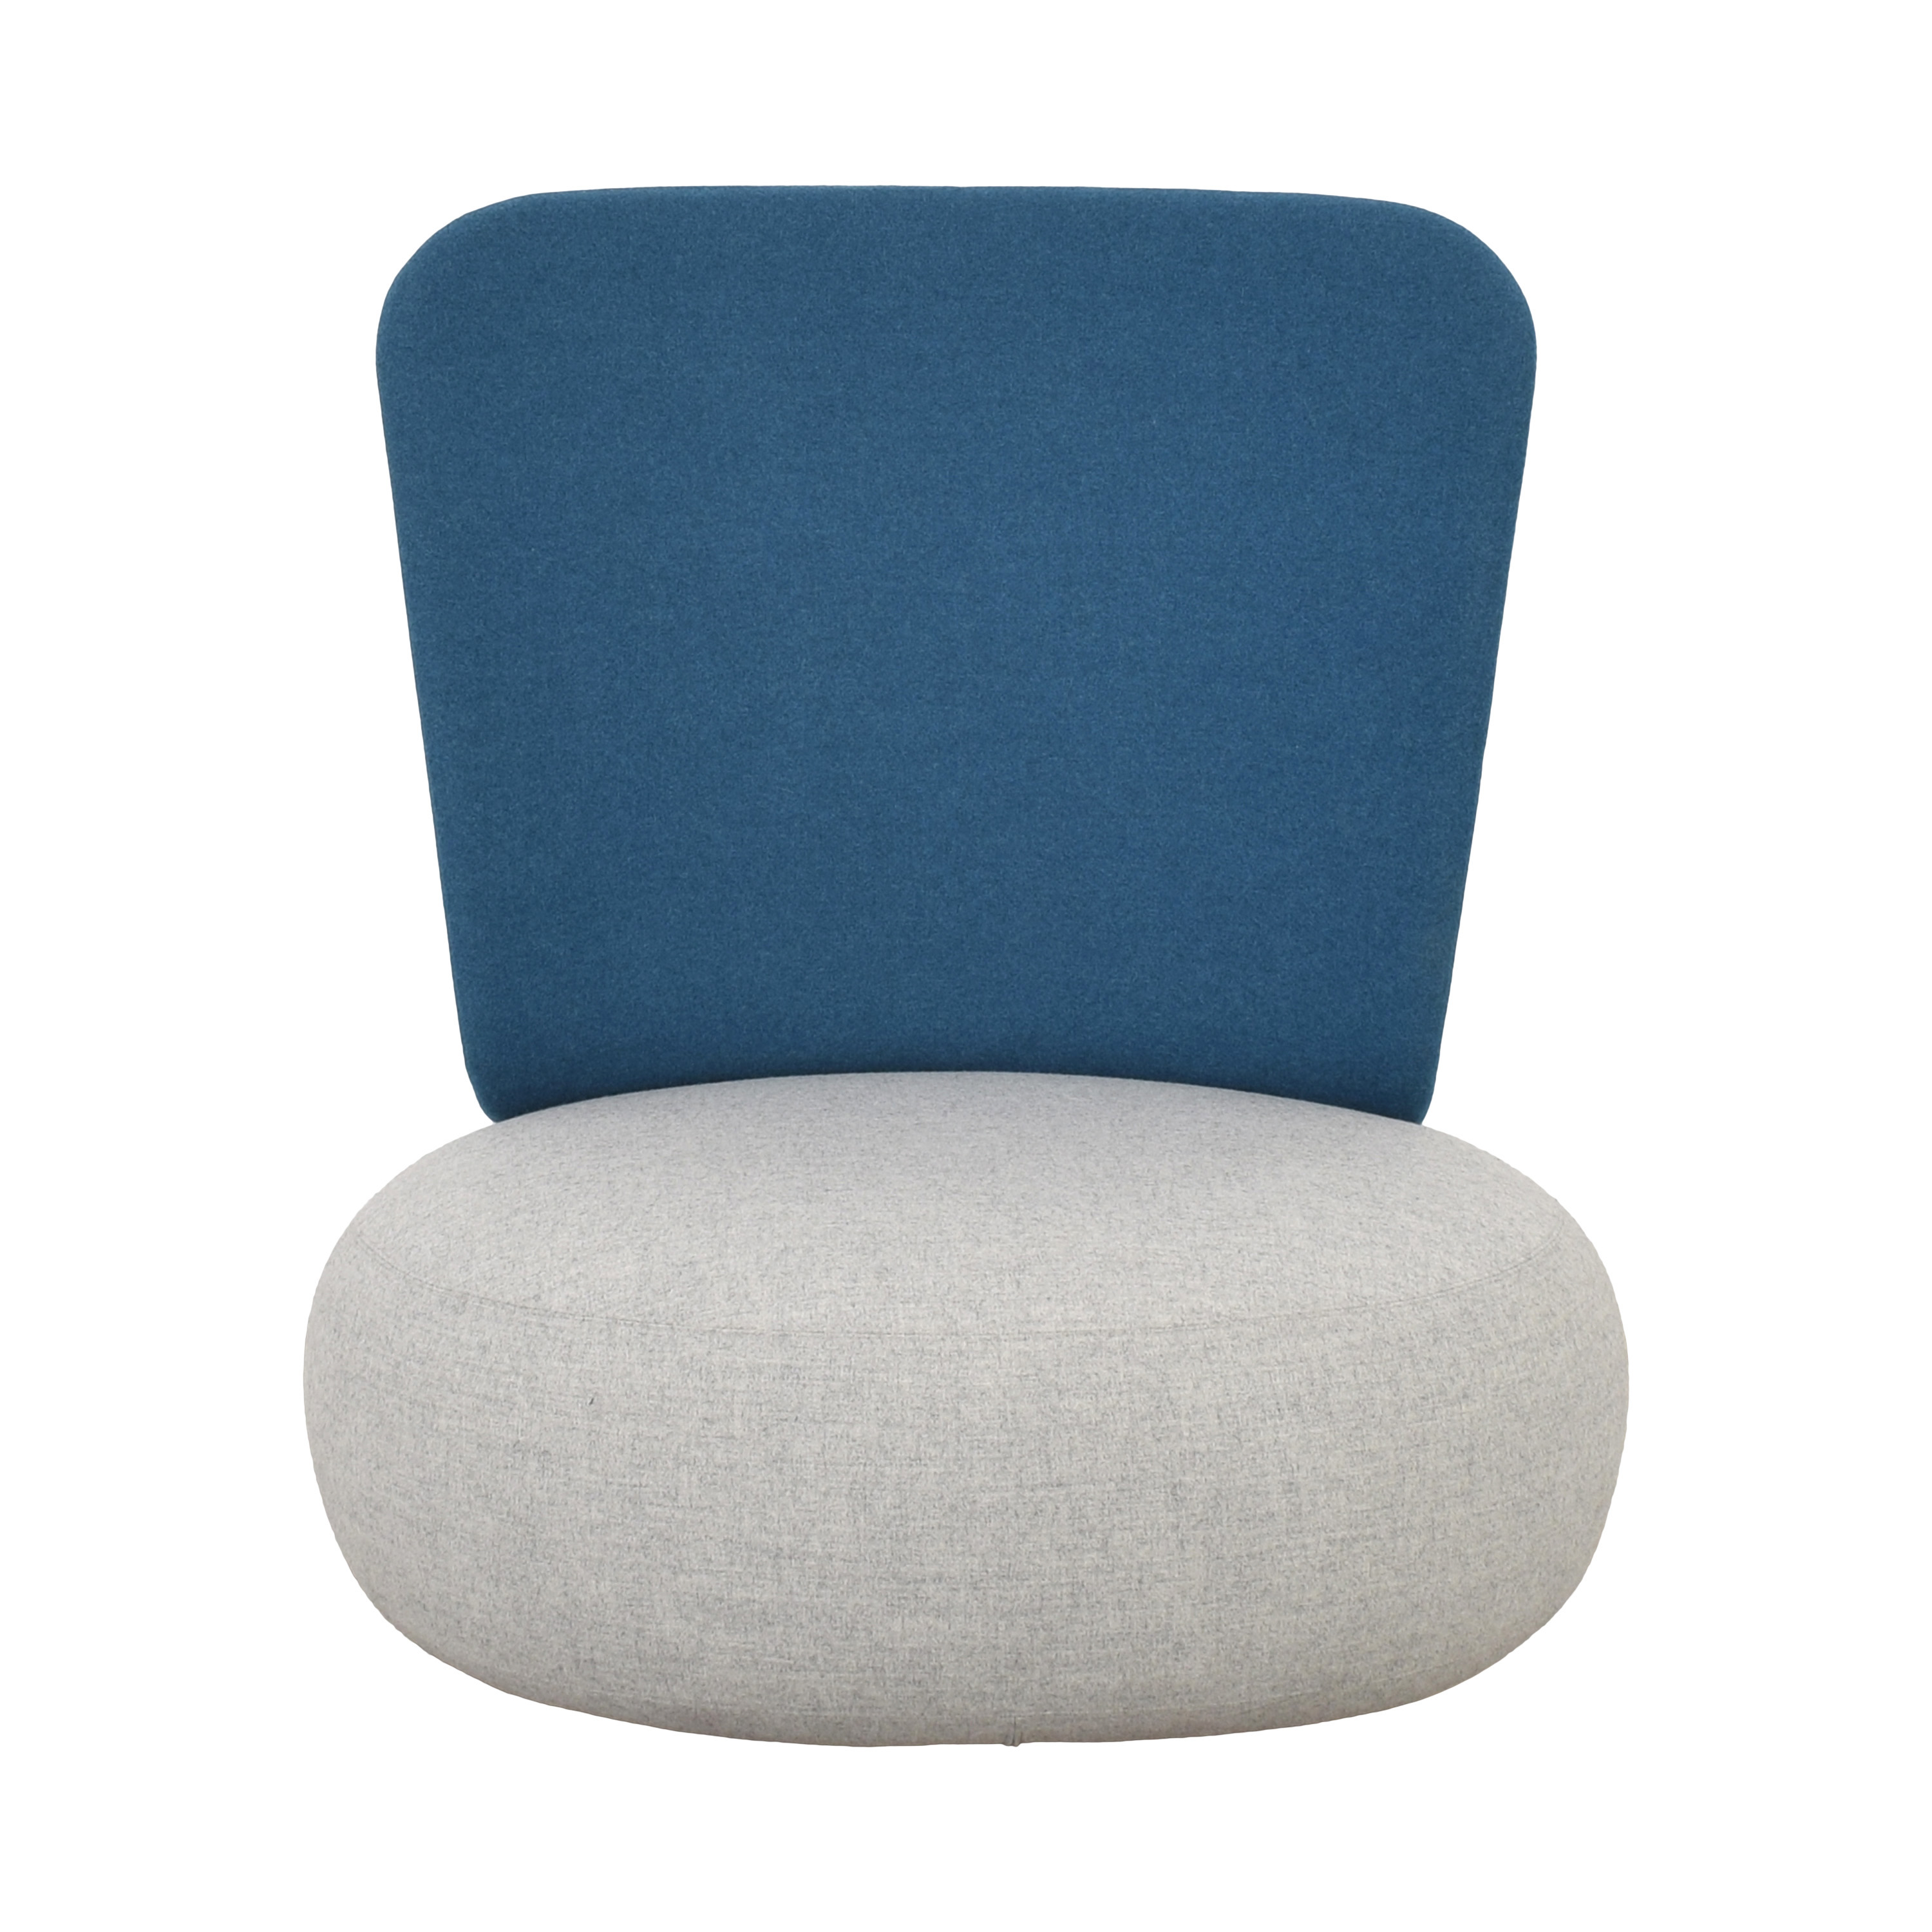 Koleksiyon Koleksiyon Solis Pouf with Backrest coupon